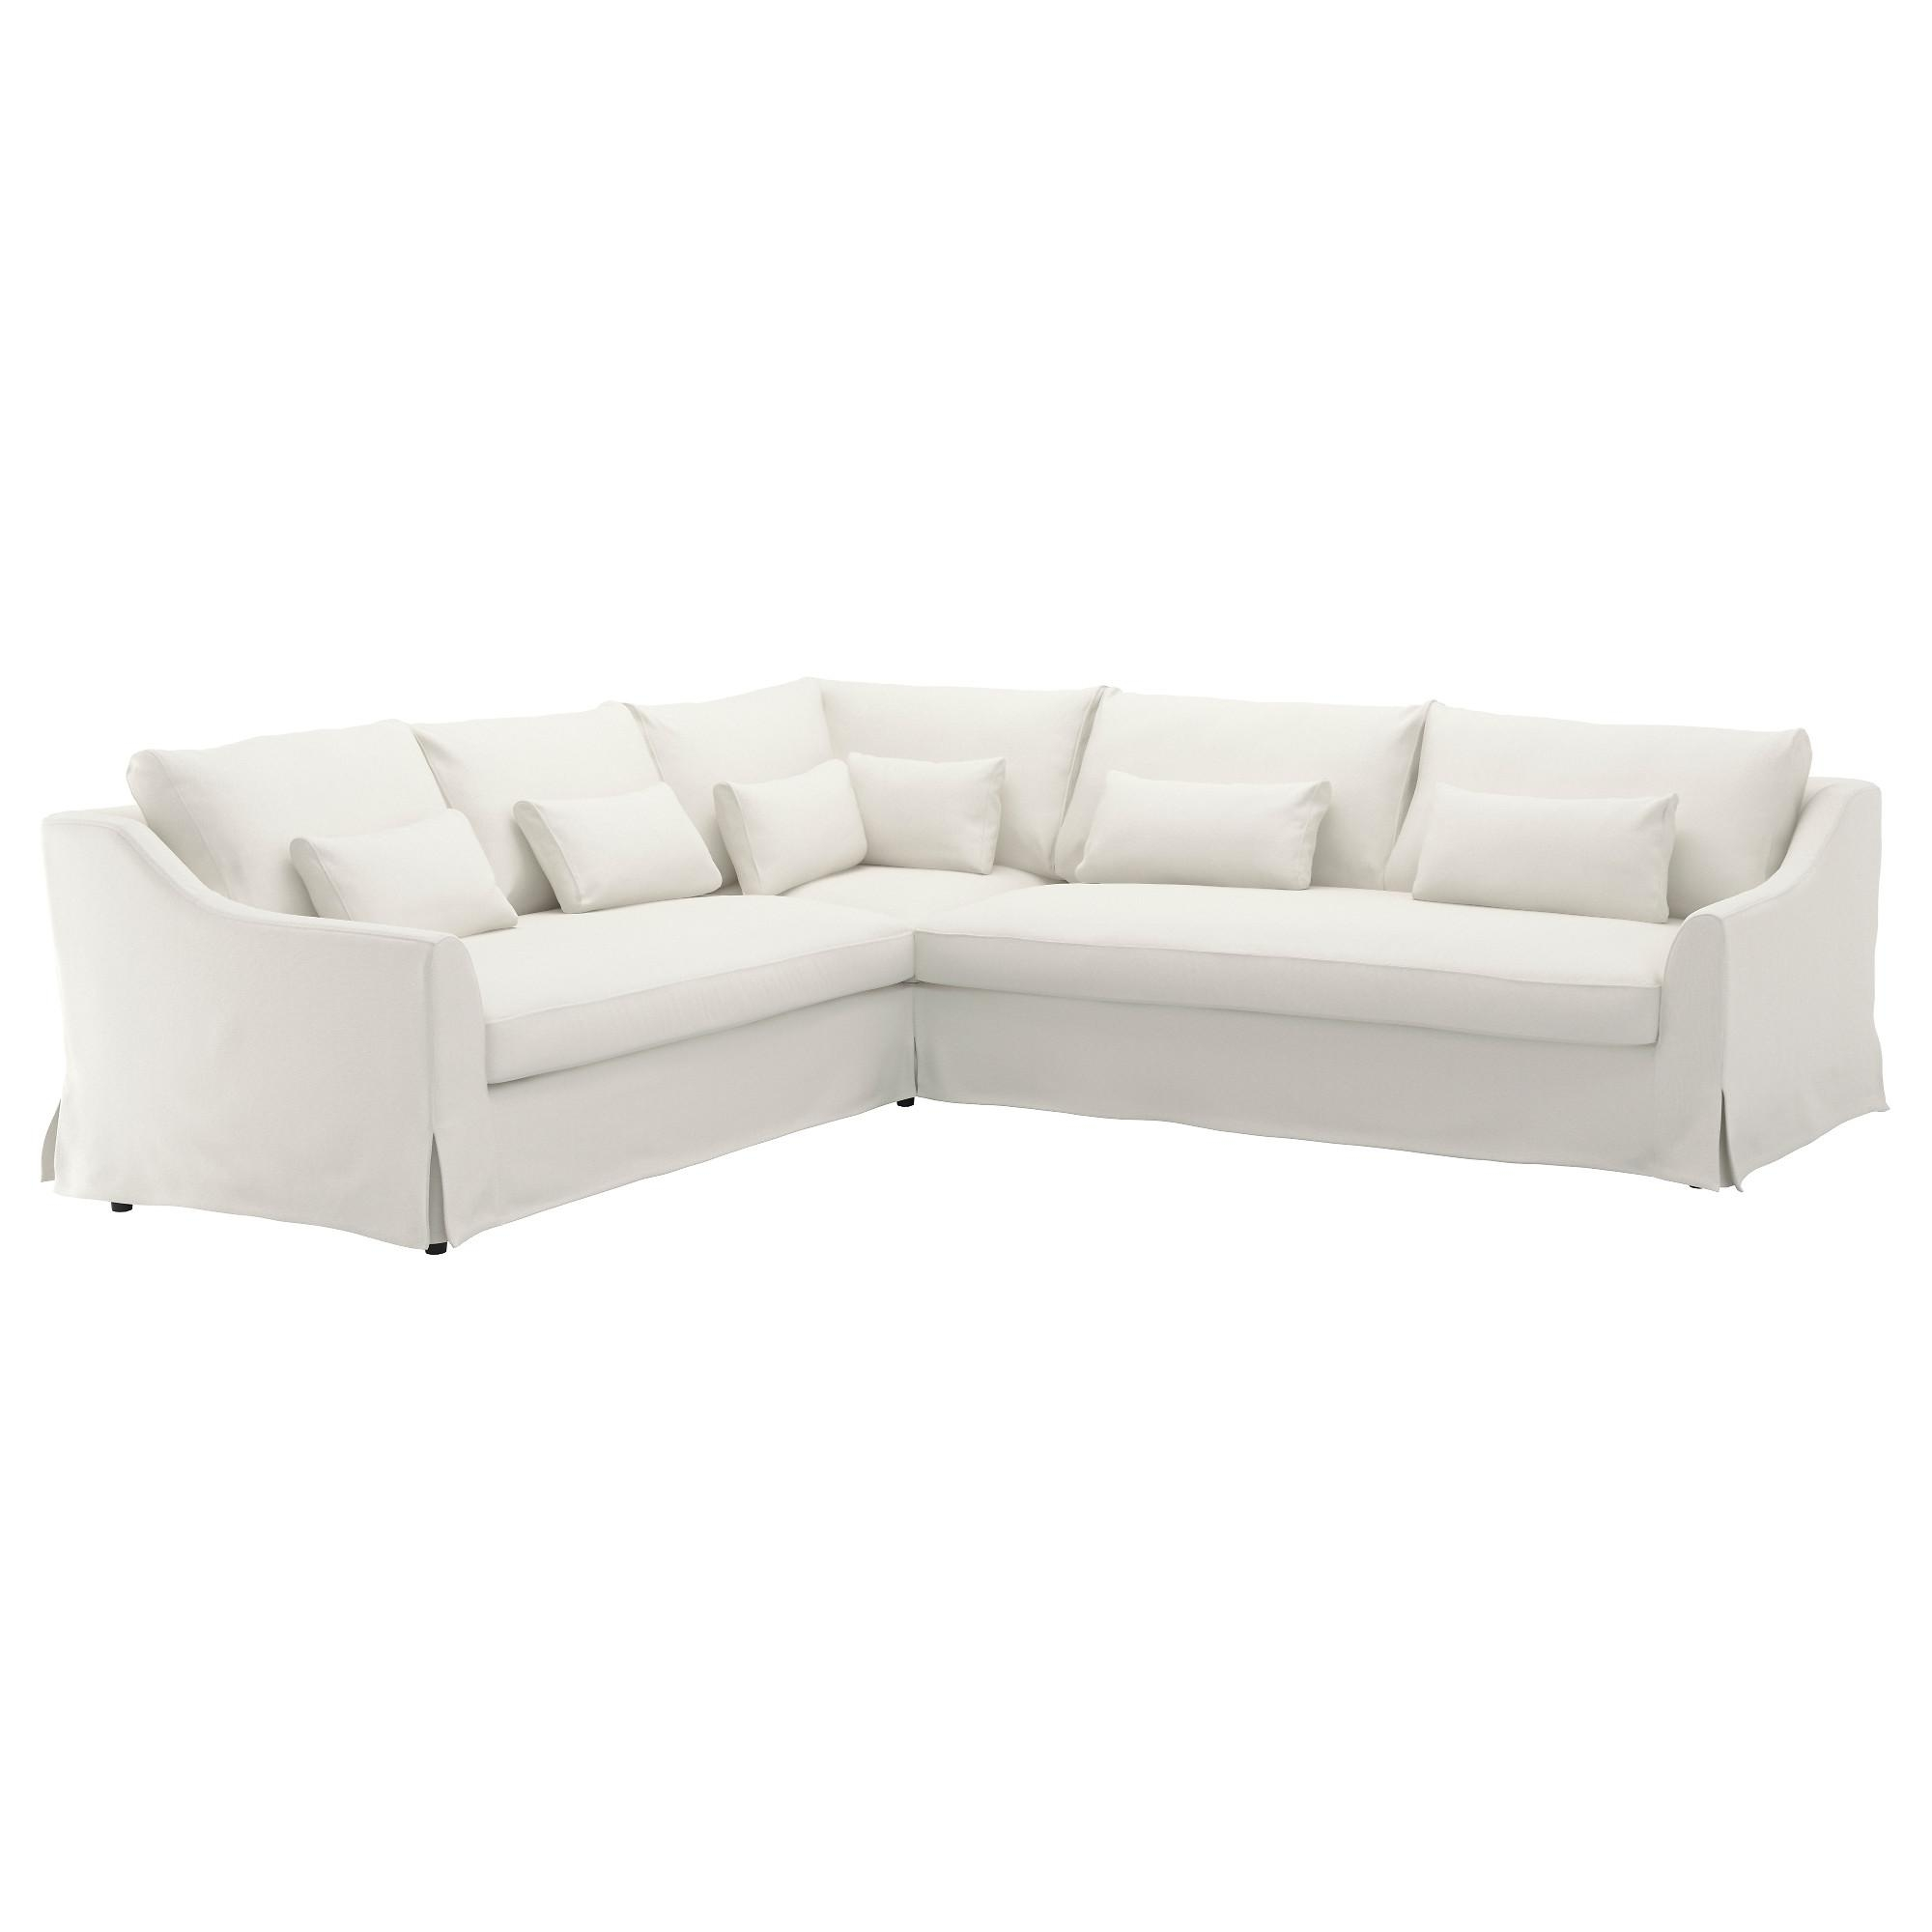 20 Best Collection Of White Leather Corner Sofa: 2019 Latest Ikea Sectional Sofa Sleeper